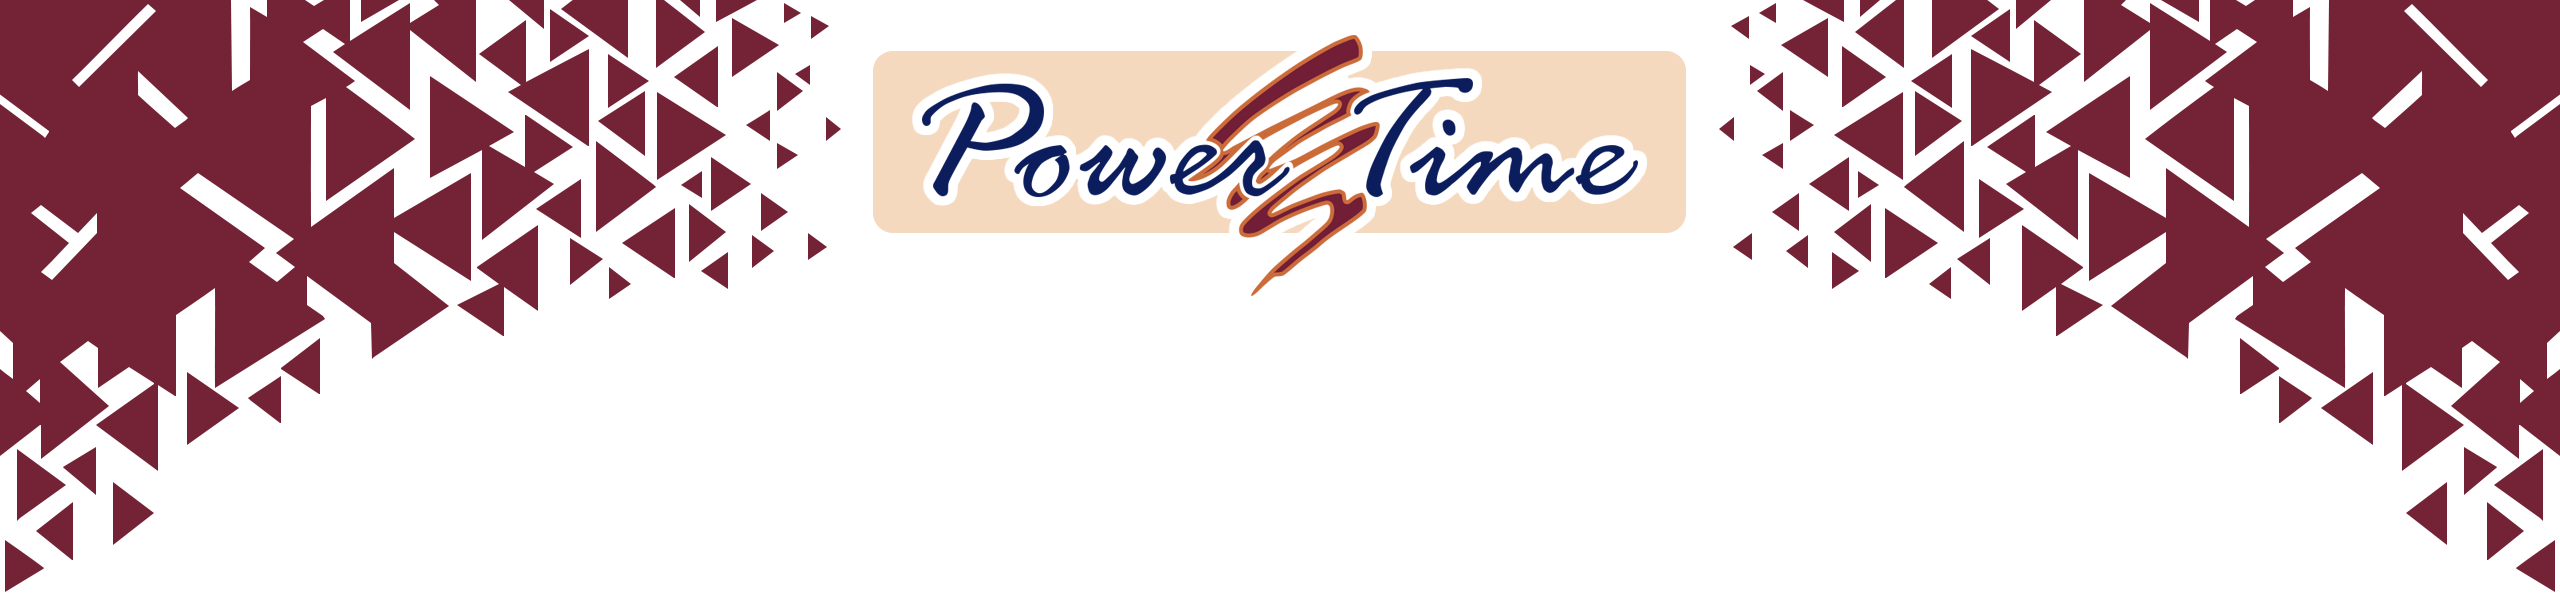 PowerTime Software Banner